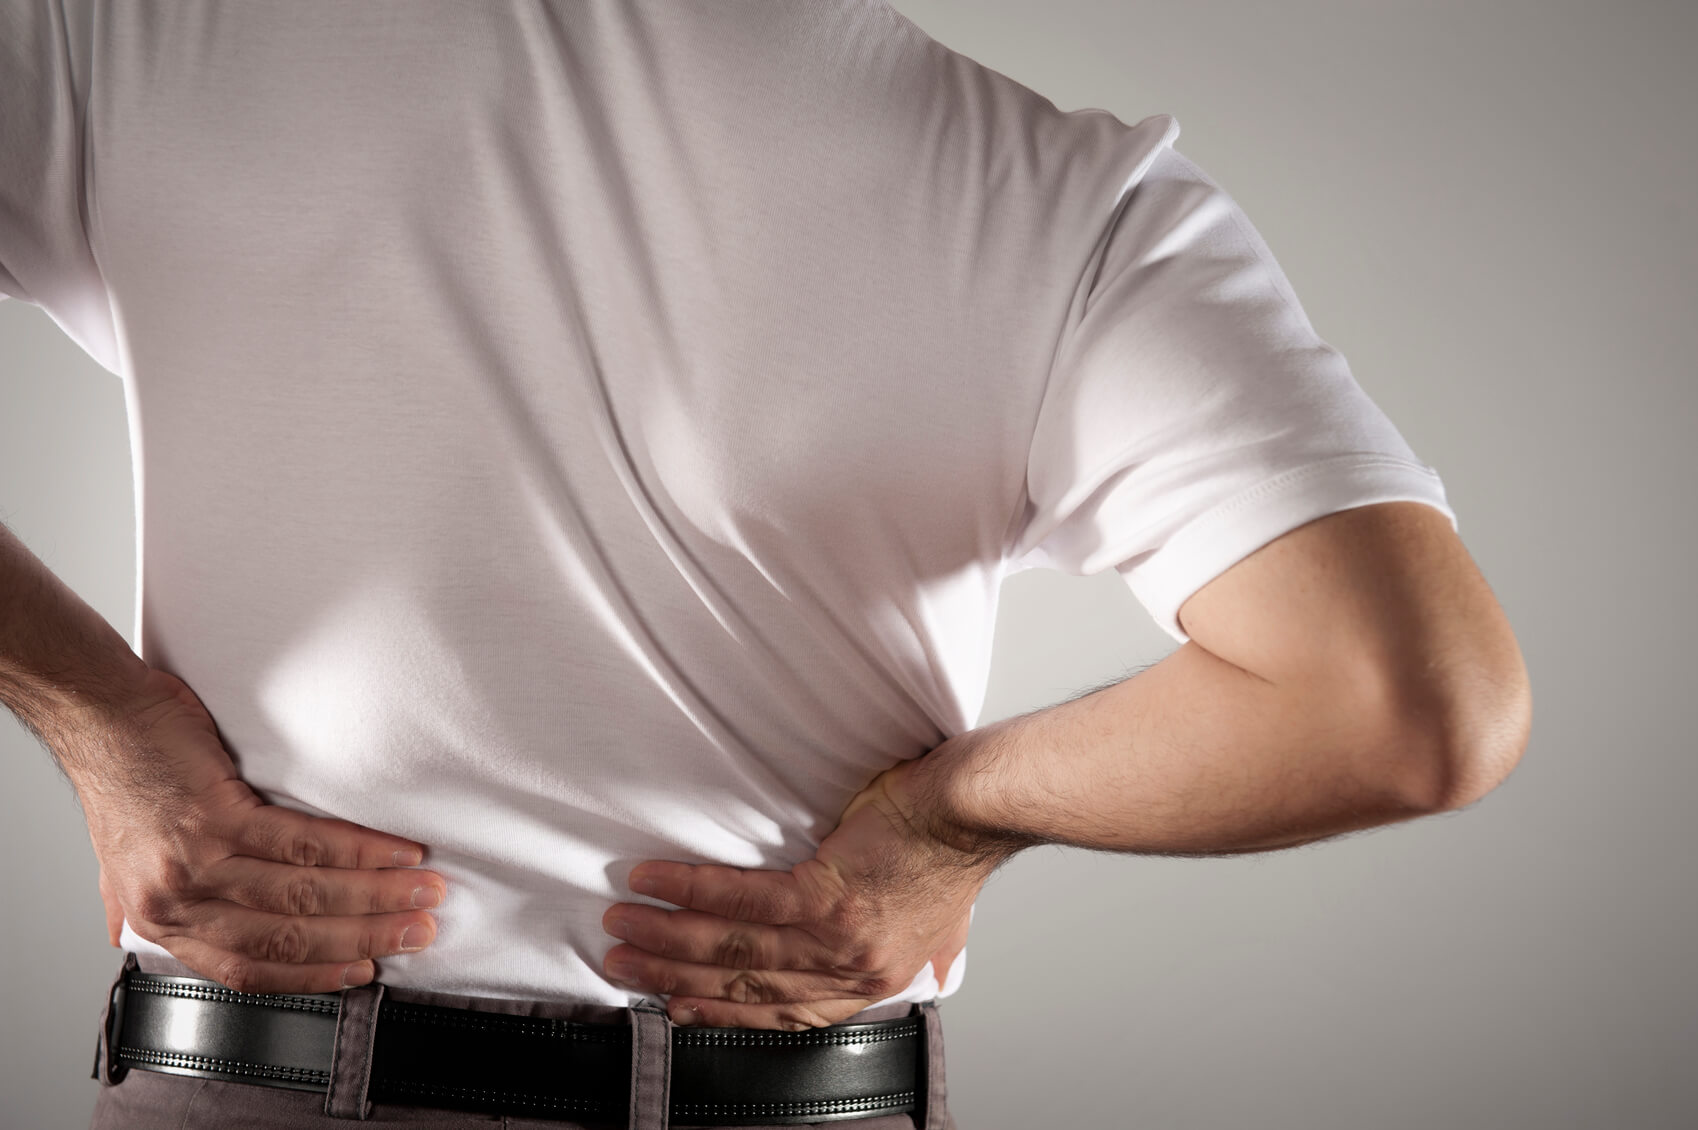 male in white t-shirt clutching his back in pain